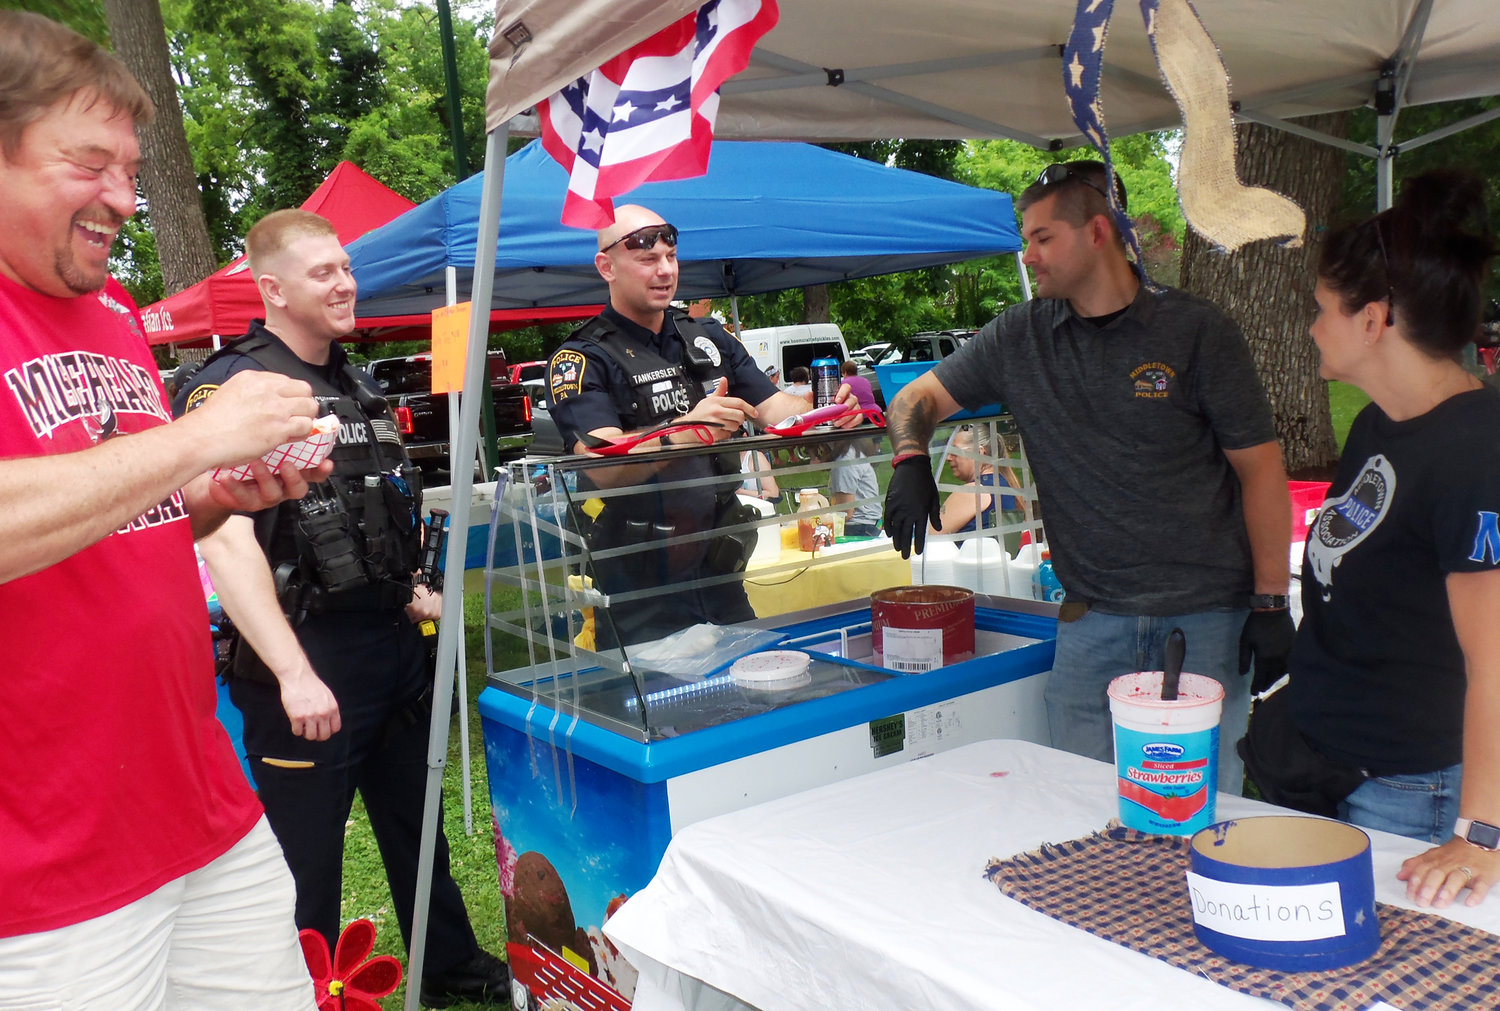 The Middletown Police Association raised funds by selling fresh strawberries with ice cream at the Middletown Area Historical Society's Arts & Crafts Fair on June 8 at Hoffer Park.